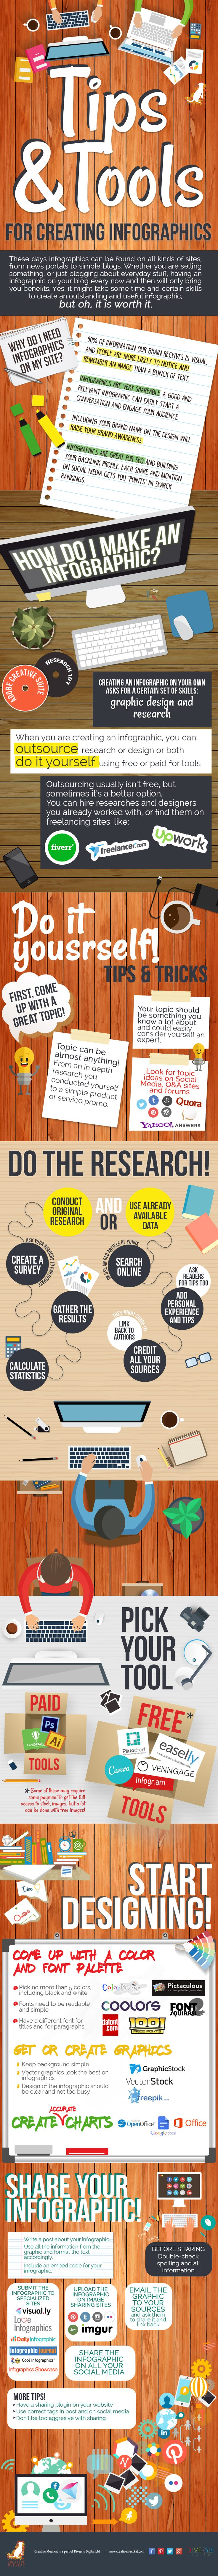 Tips & Tools For Creating Infographics Infographic - http://elearninginfographics.com/tips-tools-creating-infographics-infographic/